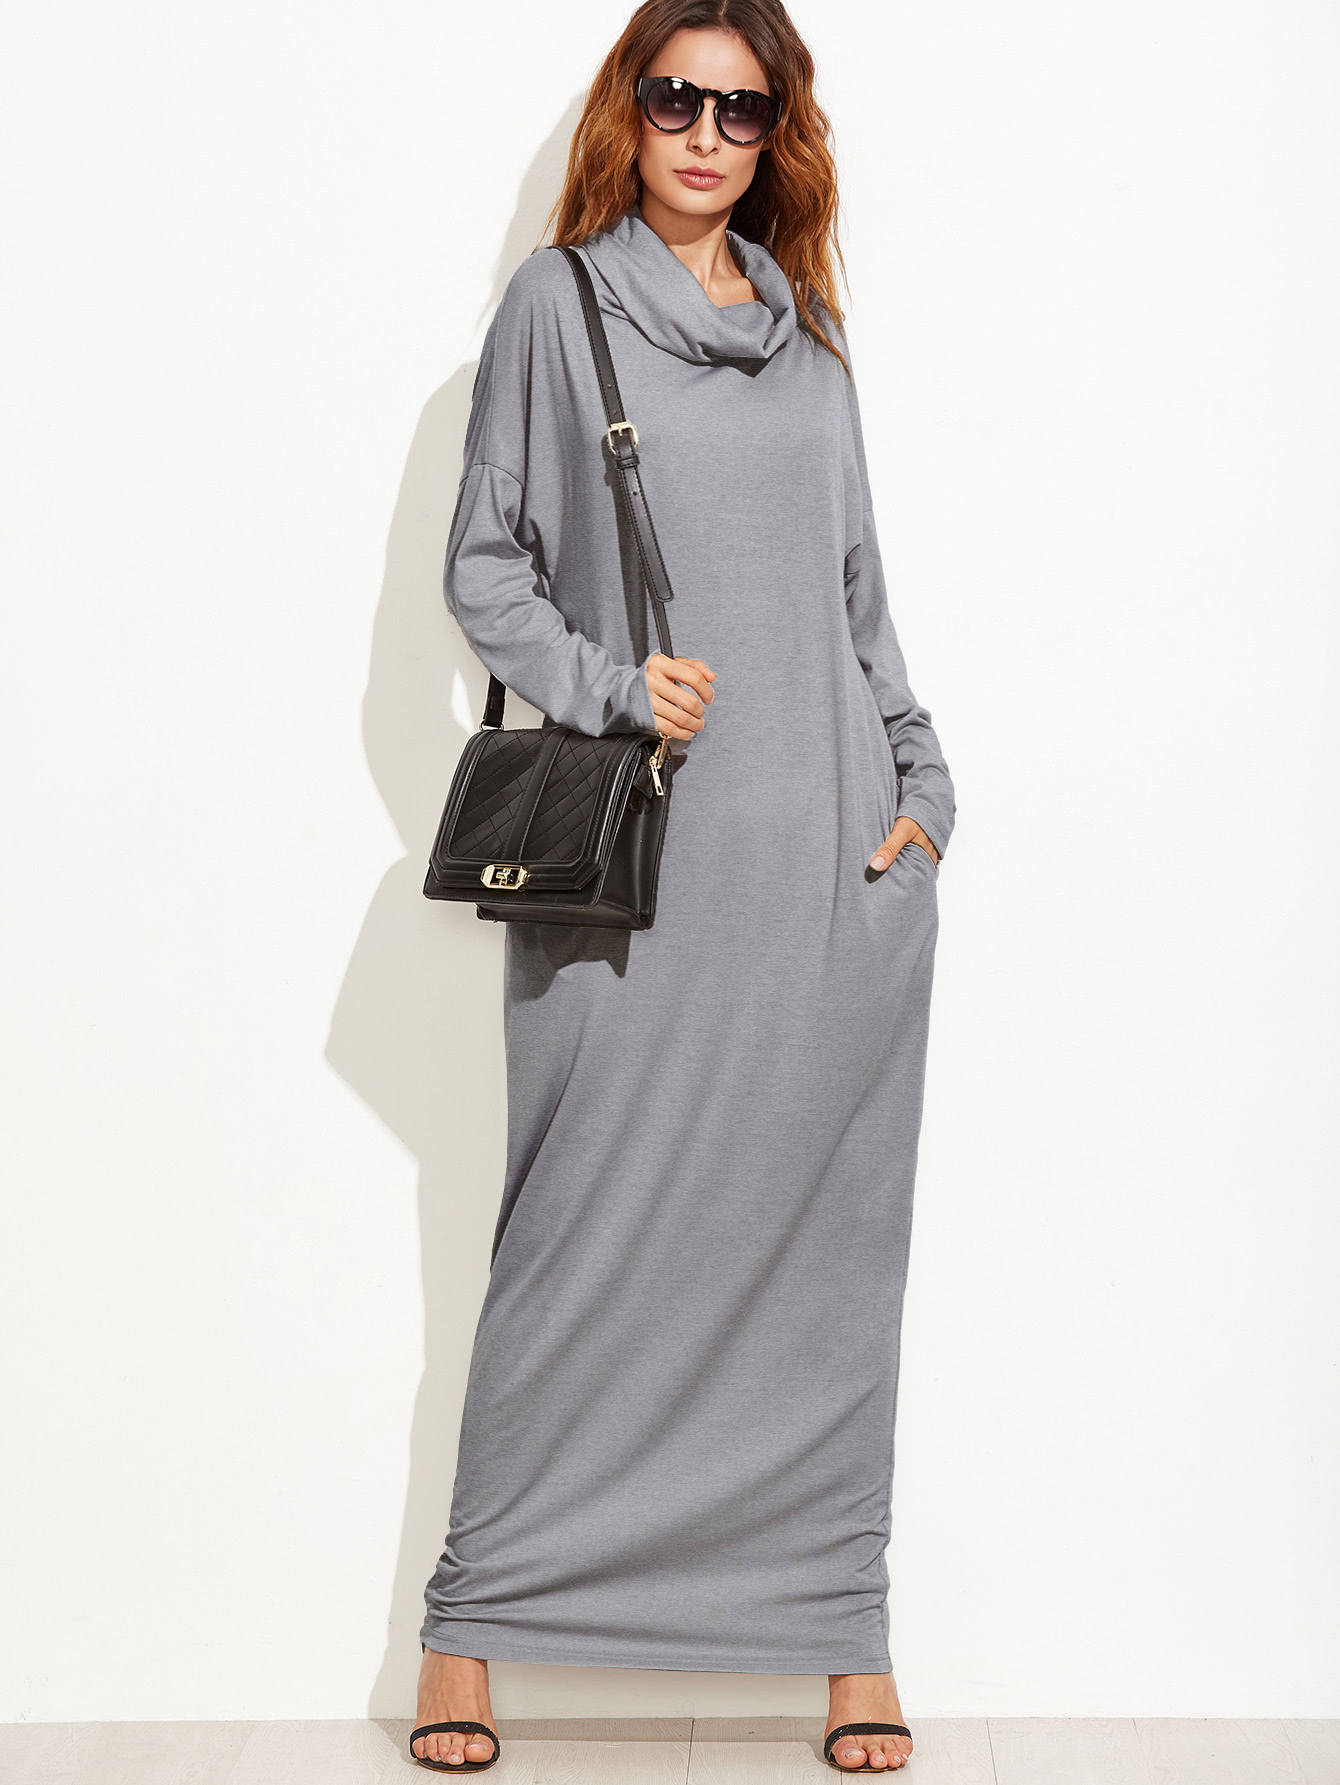 Cowl Neck Drop Shoulder Full Length Dress pocket open shoulder split full length dress